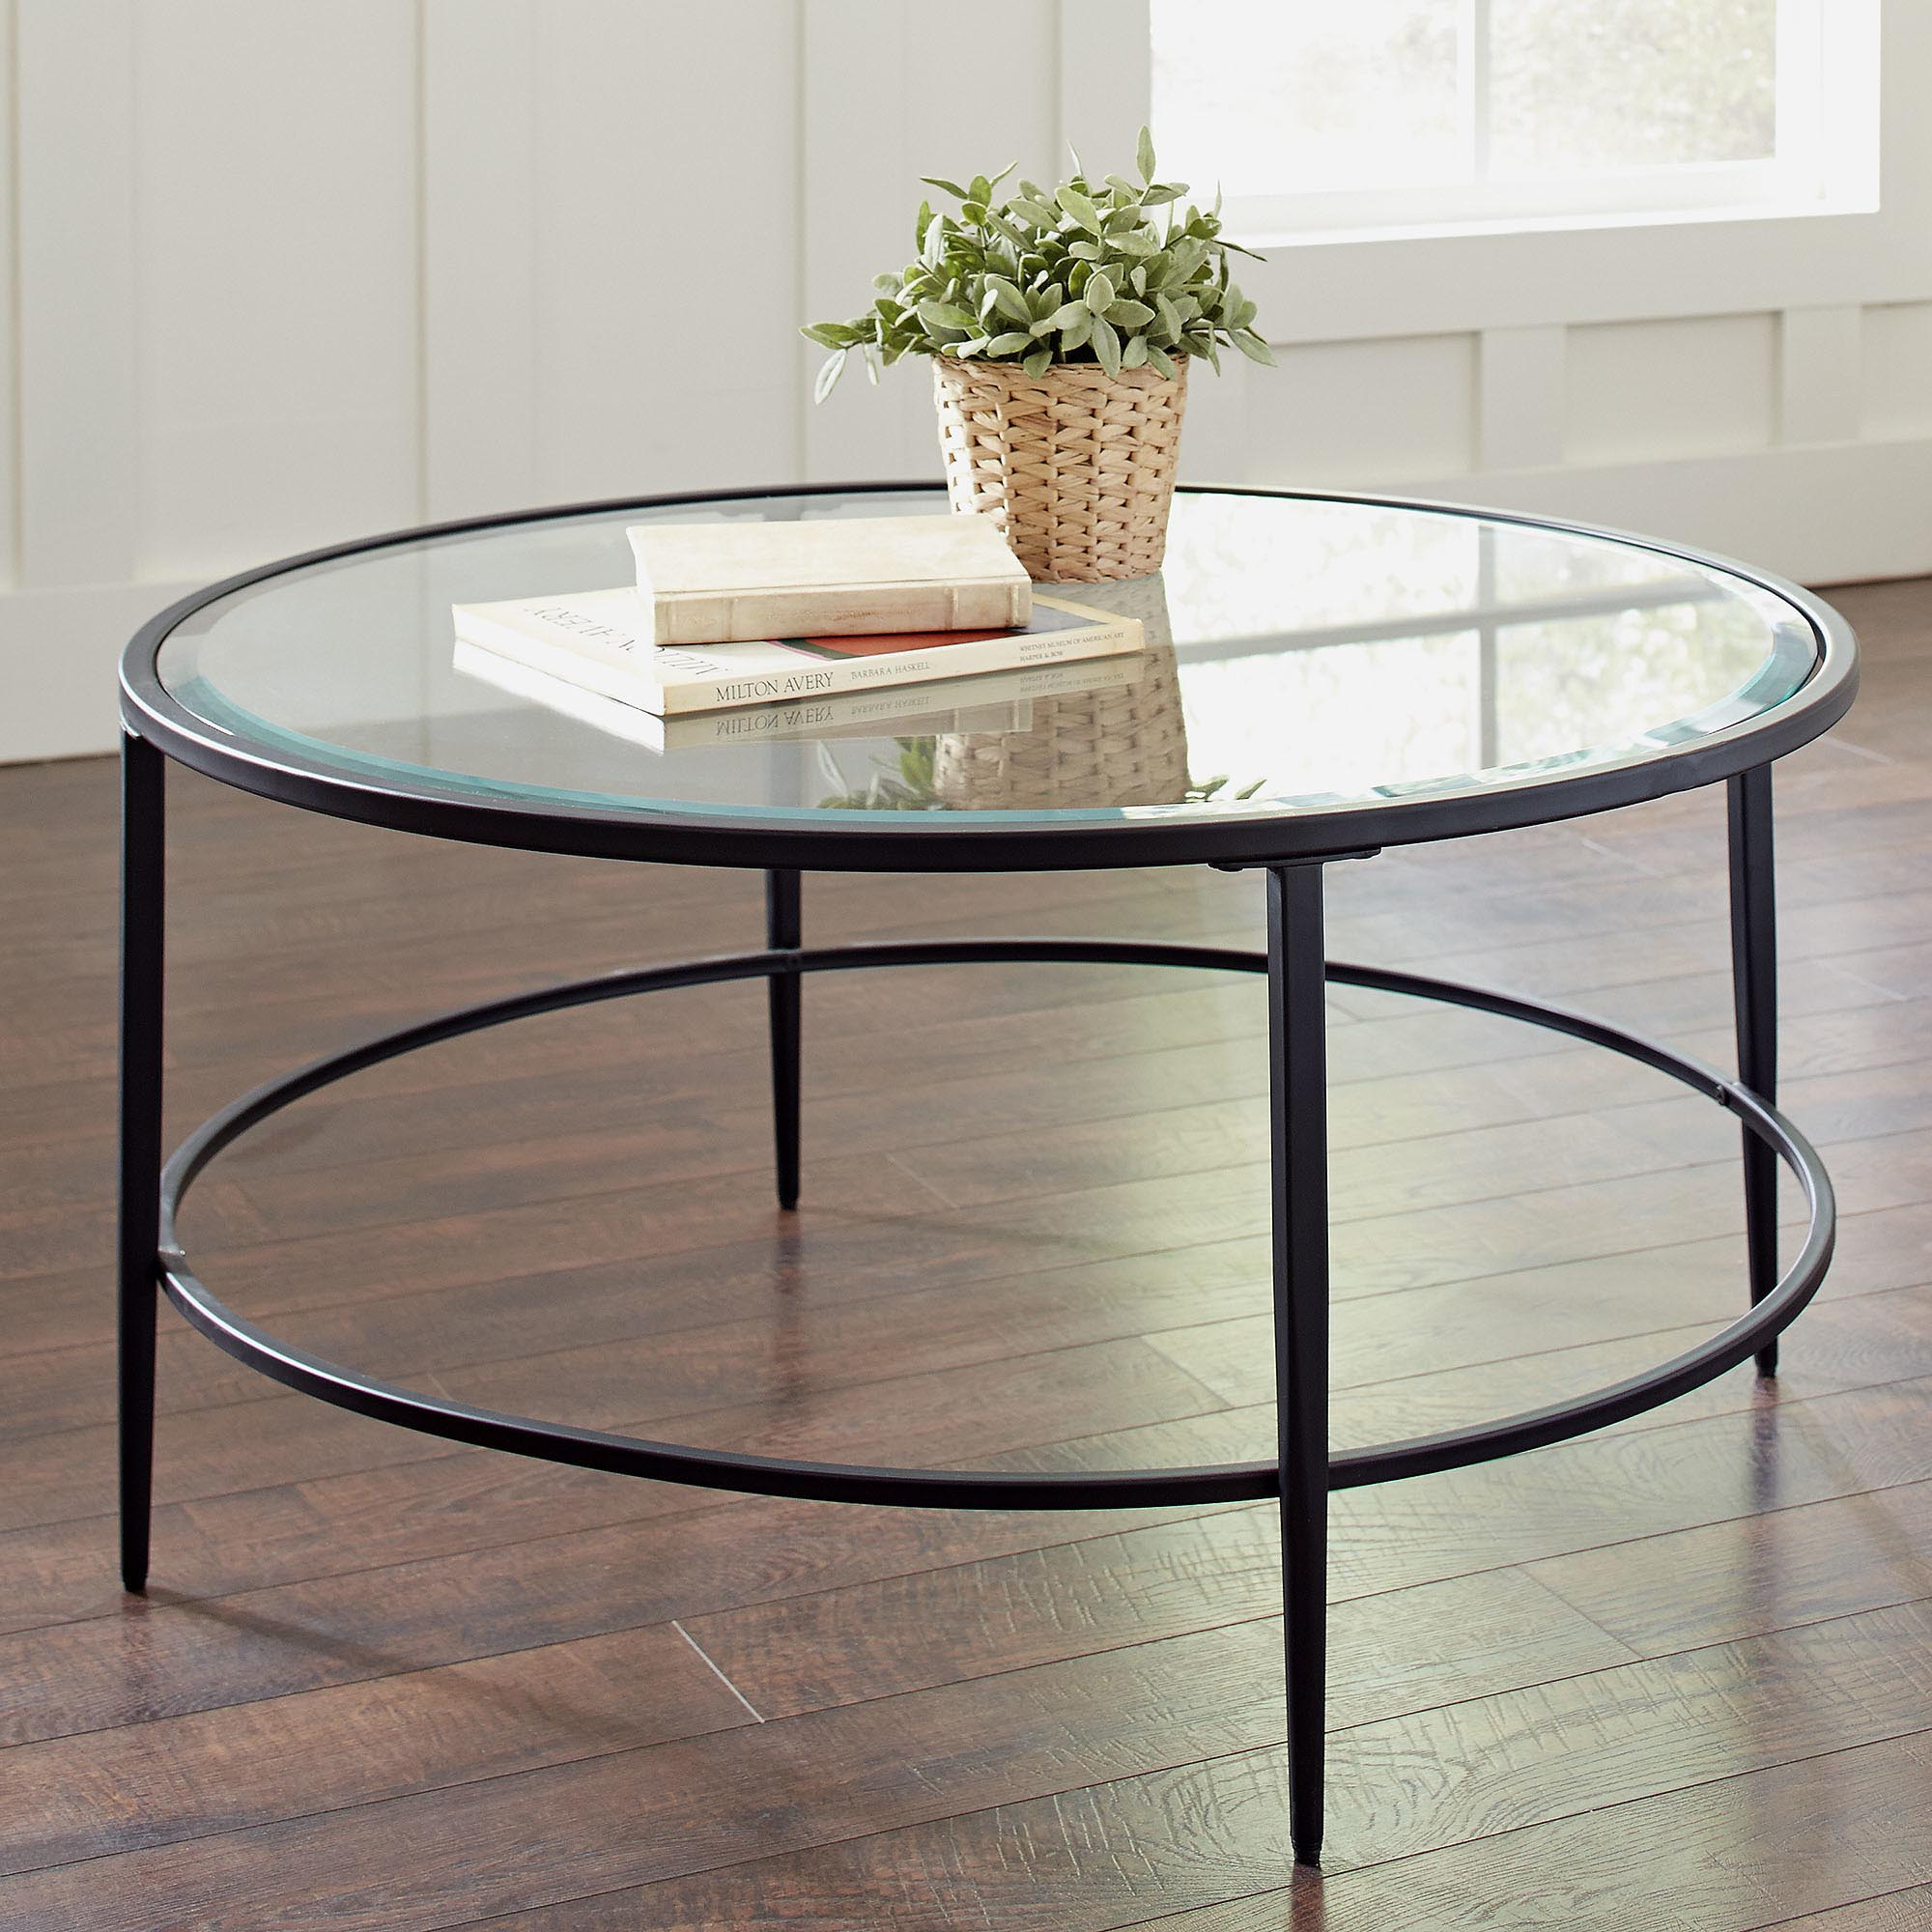 Circle coffee table significant element of the recreation area coffee table design ideas Used glass coffee table